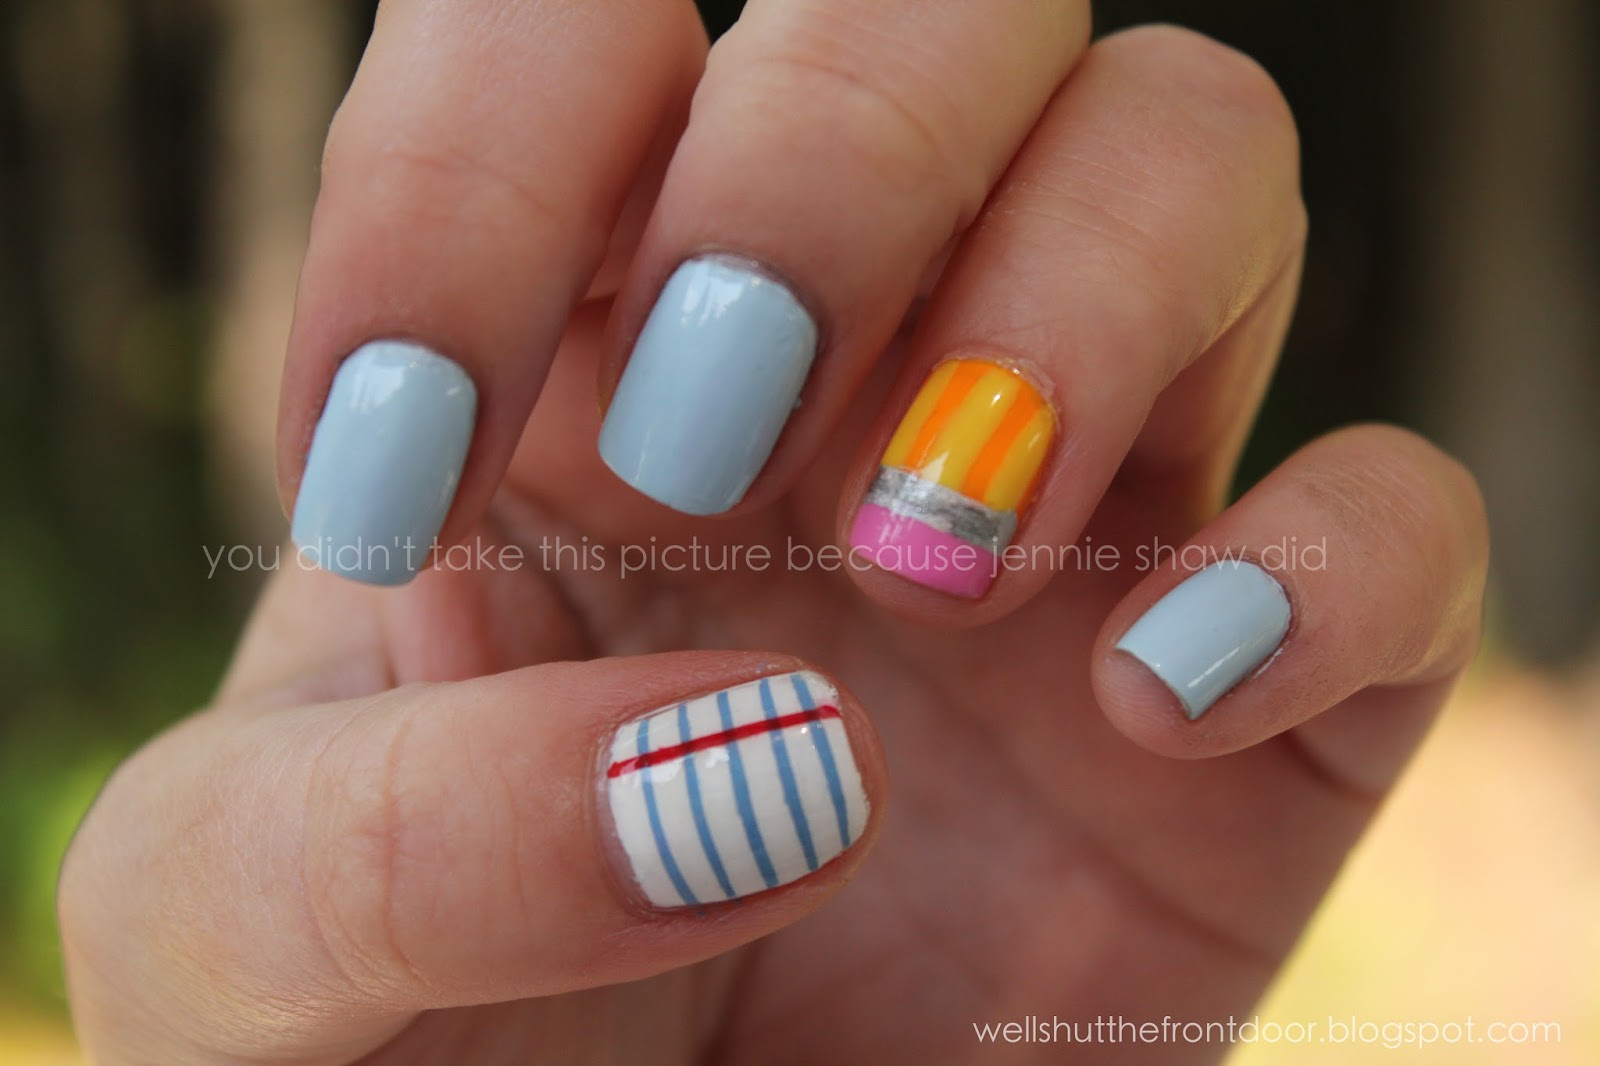 jennie\'s nails and tales: The Nail Files: Back-To-School Video Tutorial